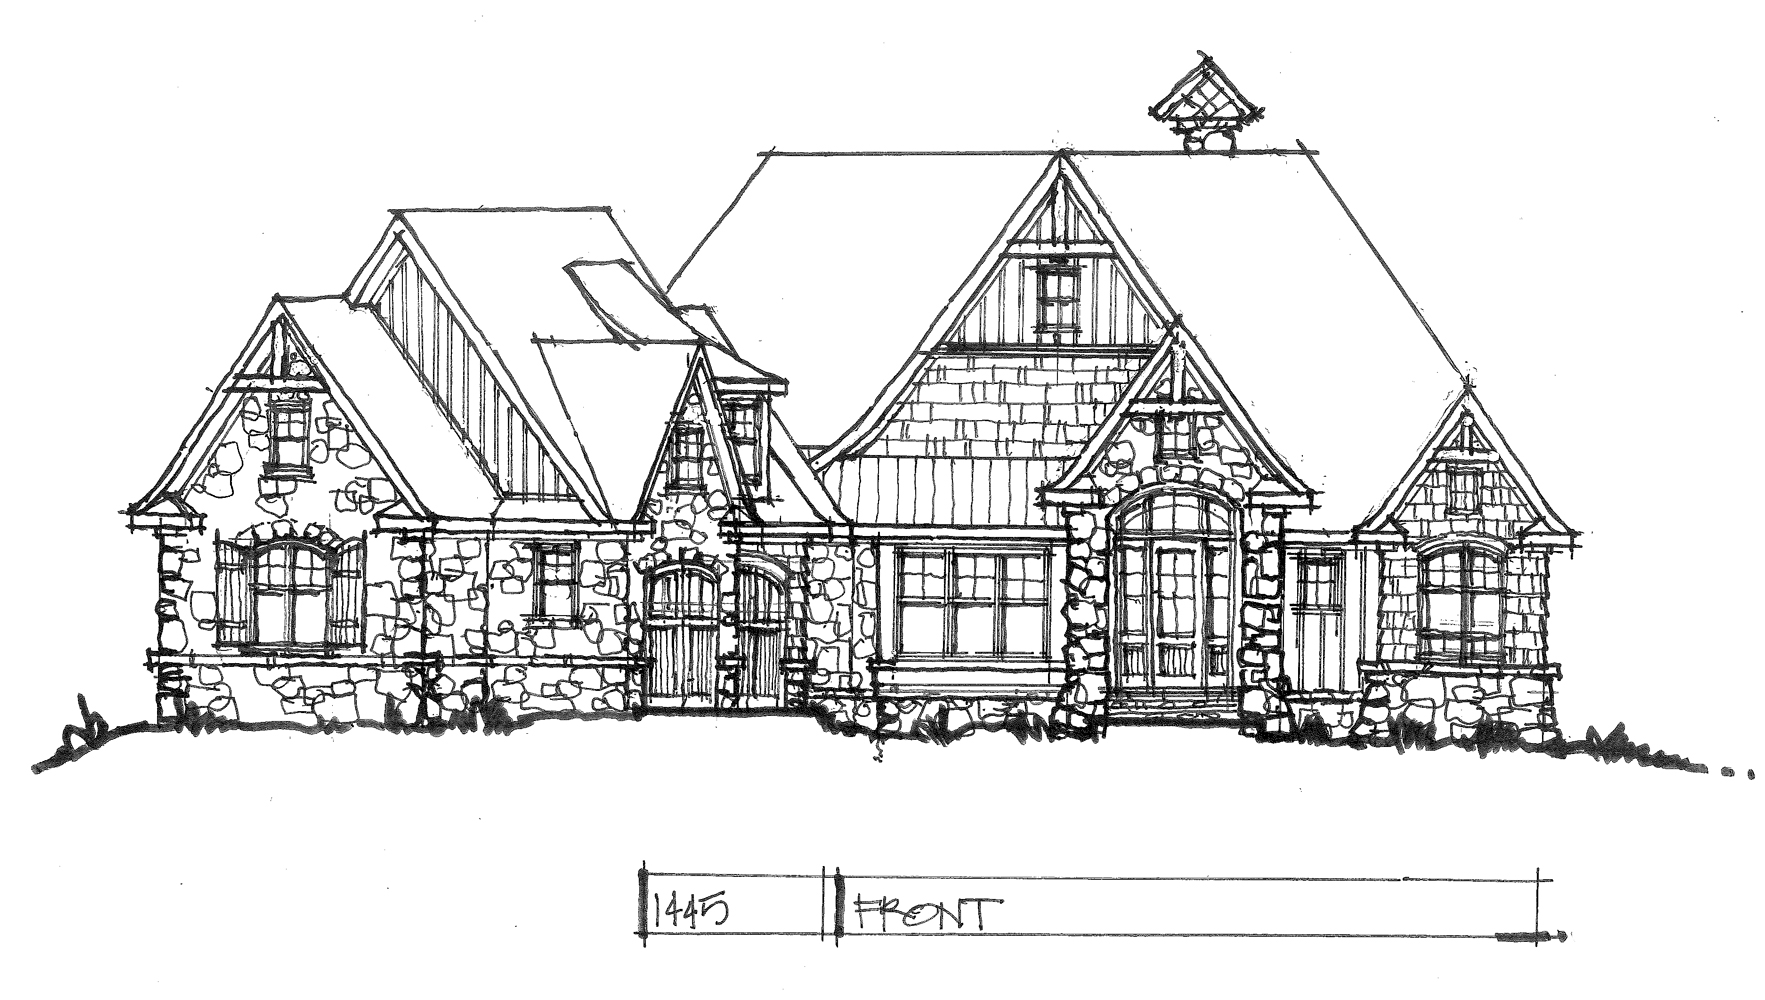 Check out the front elevation of home plan 1445.